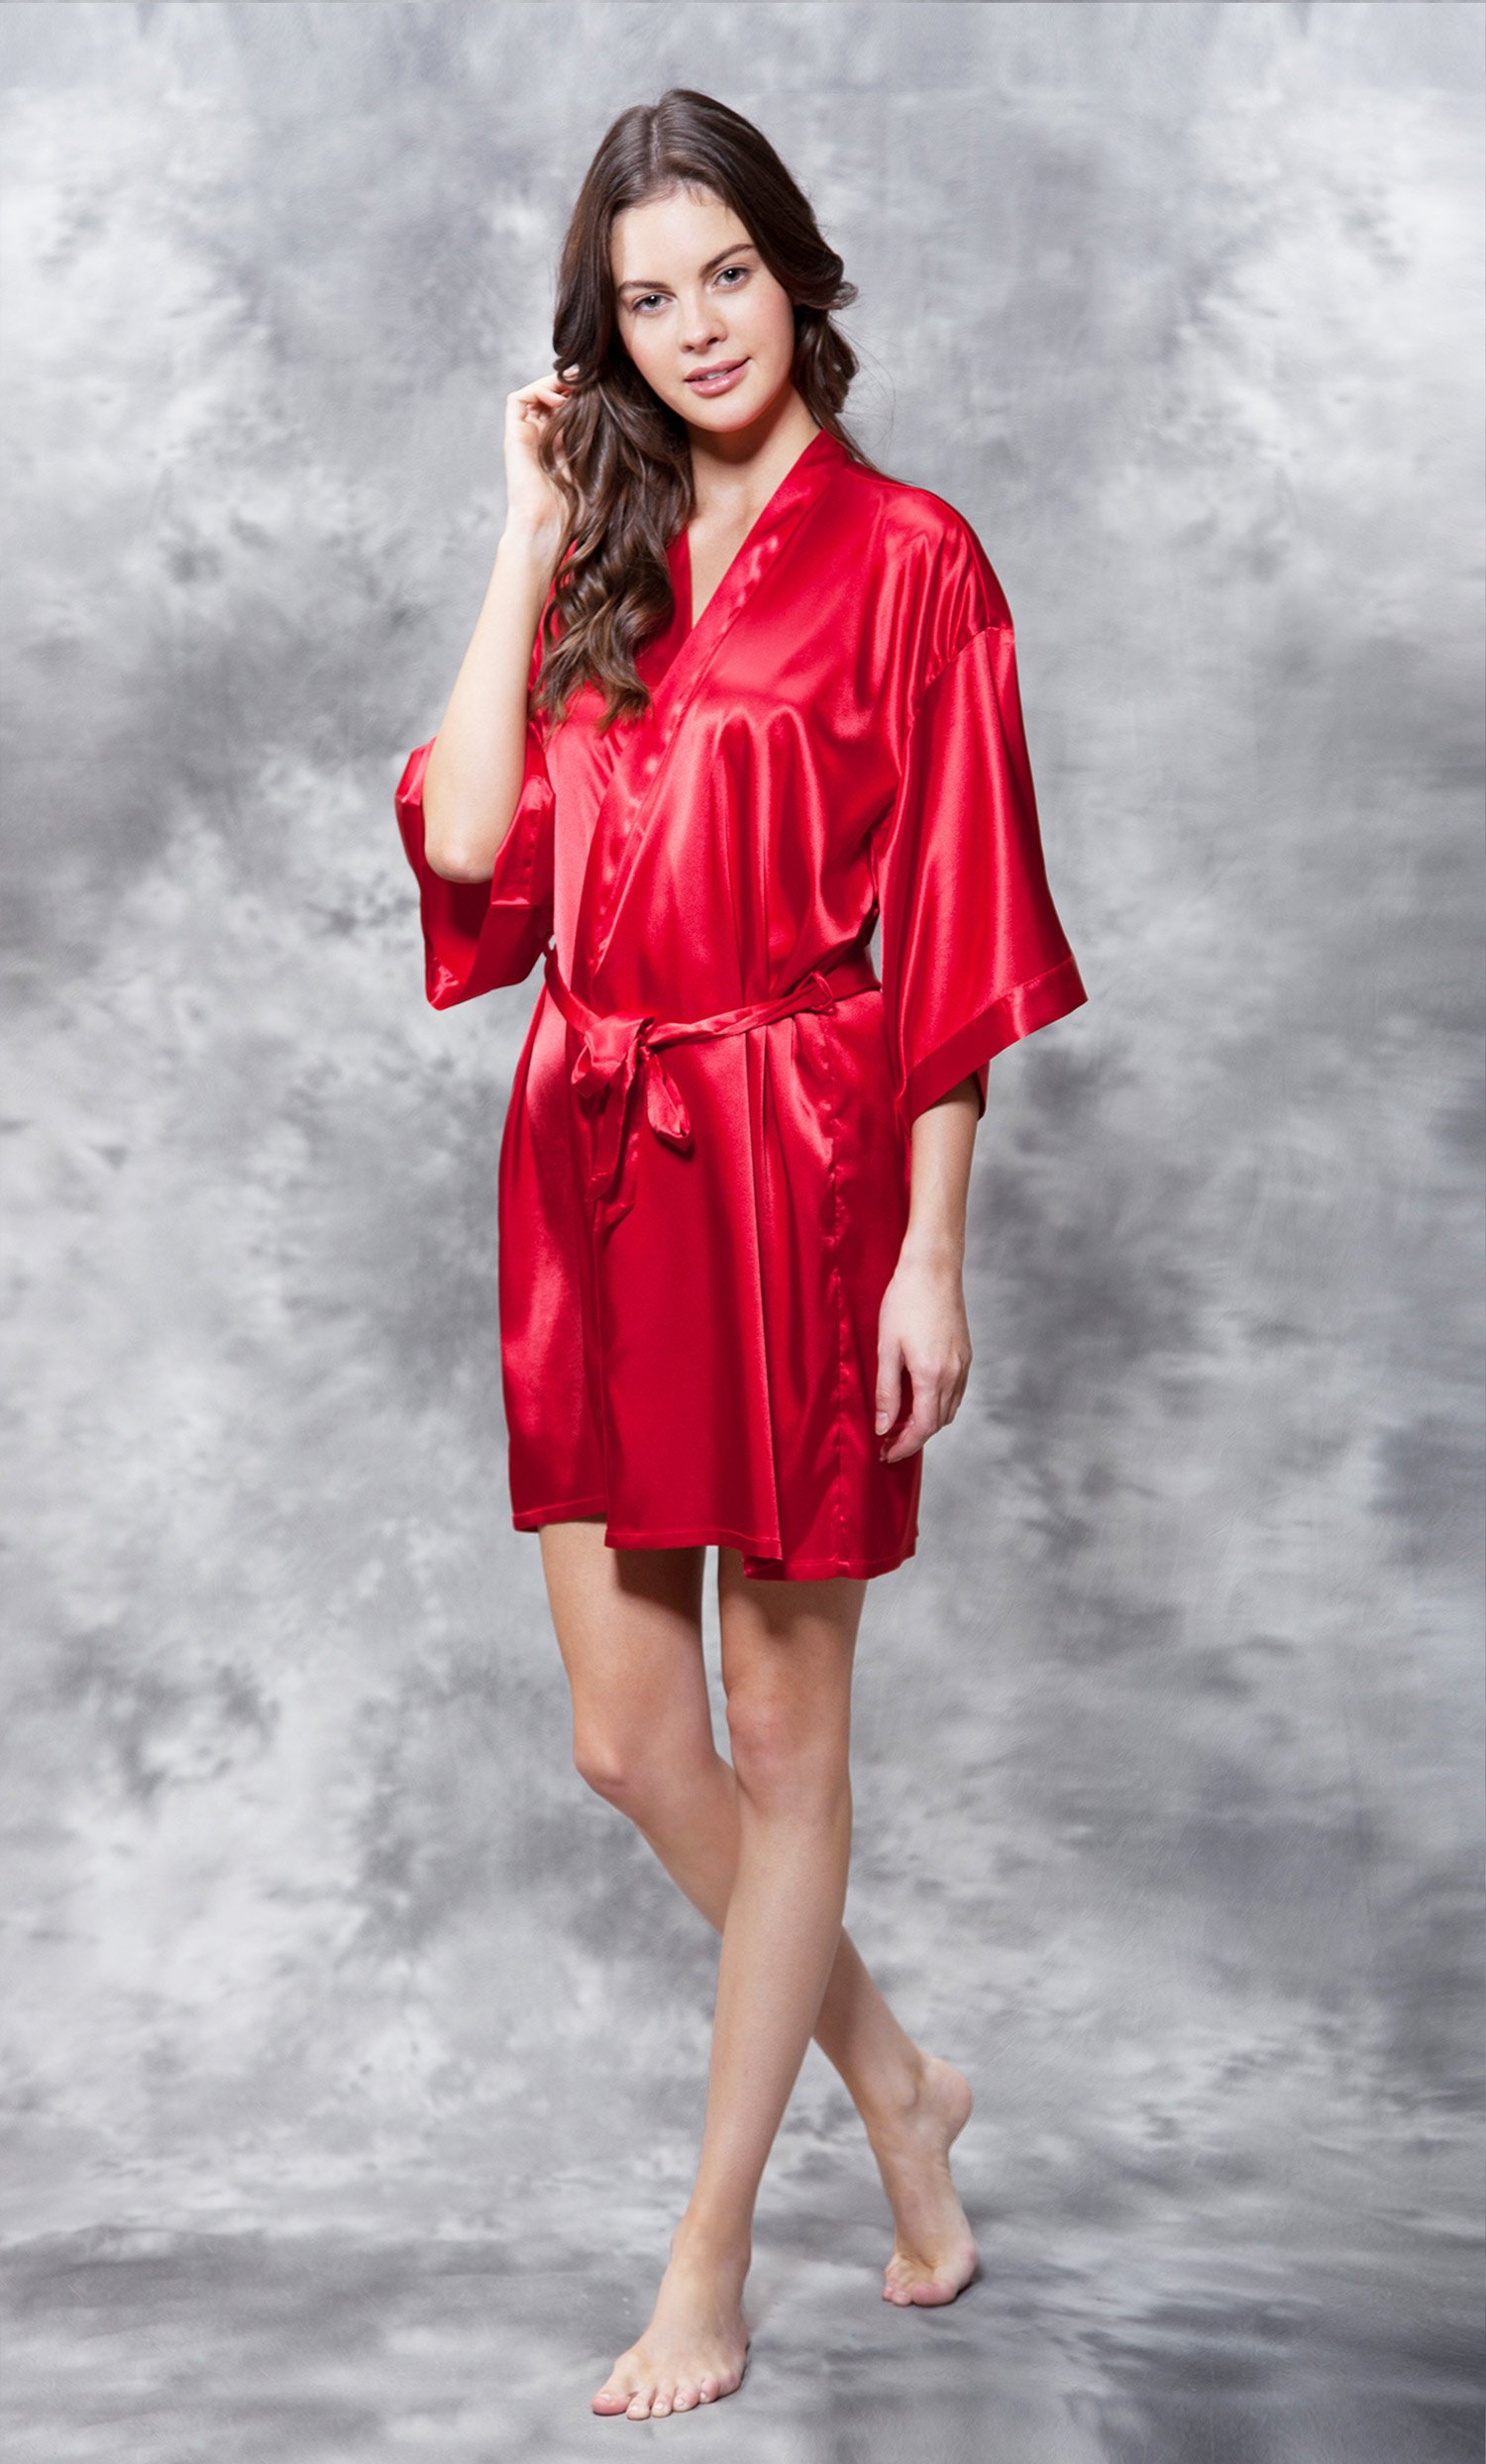 Mother of the Groom Clear Rhinestone Satin Kimono Red Short Robe-Robemart.com